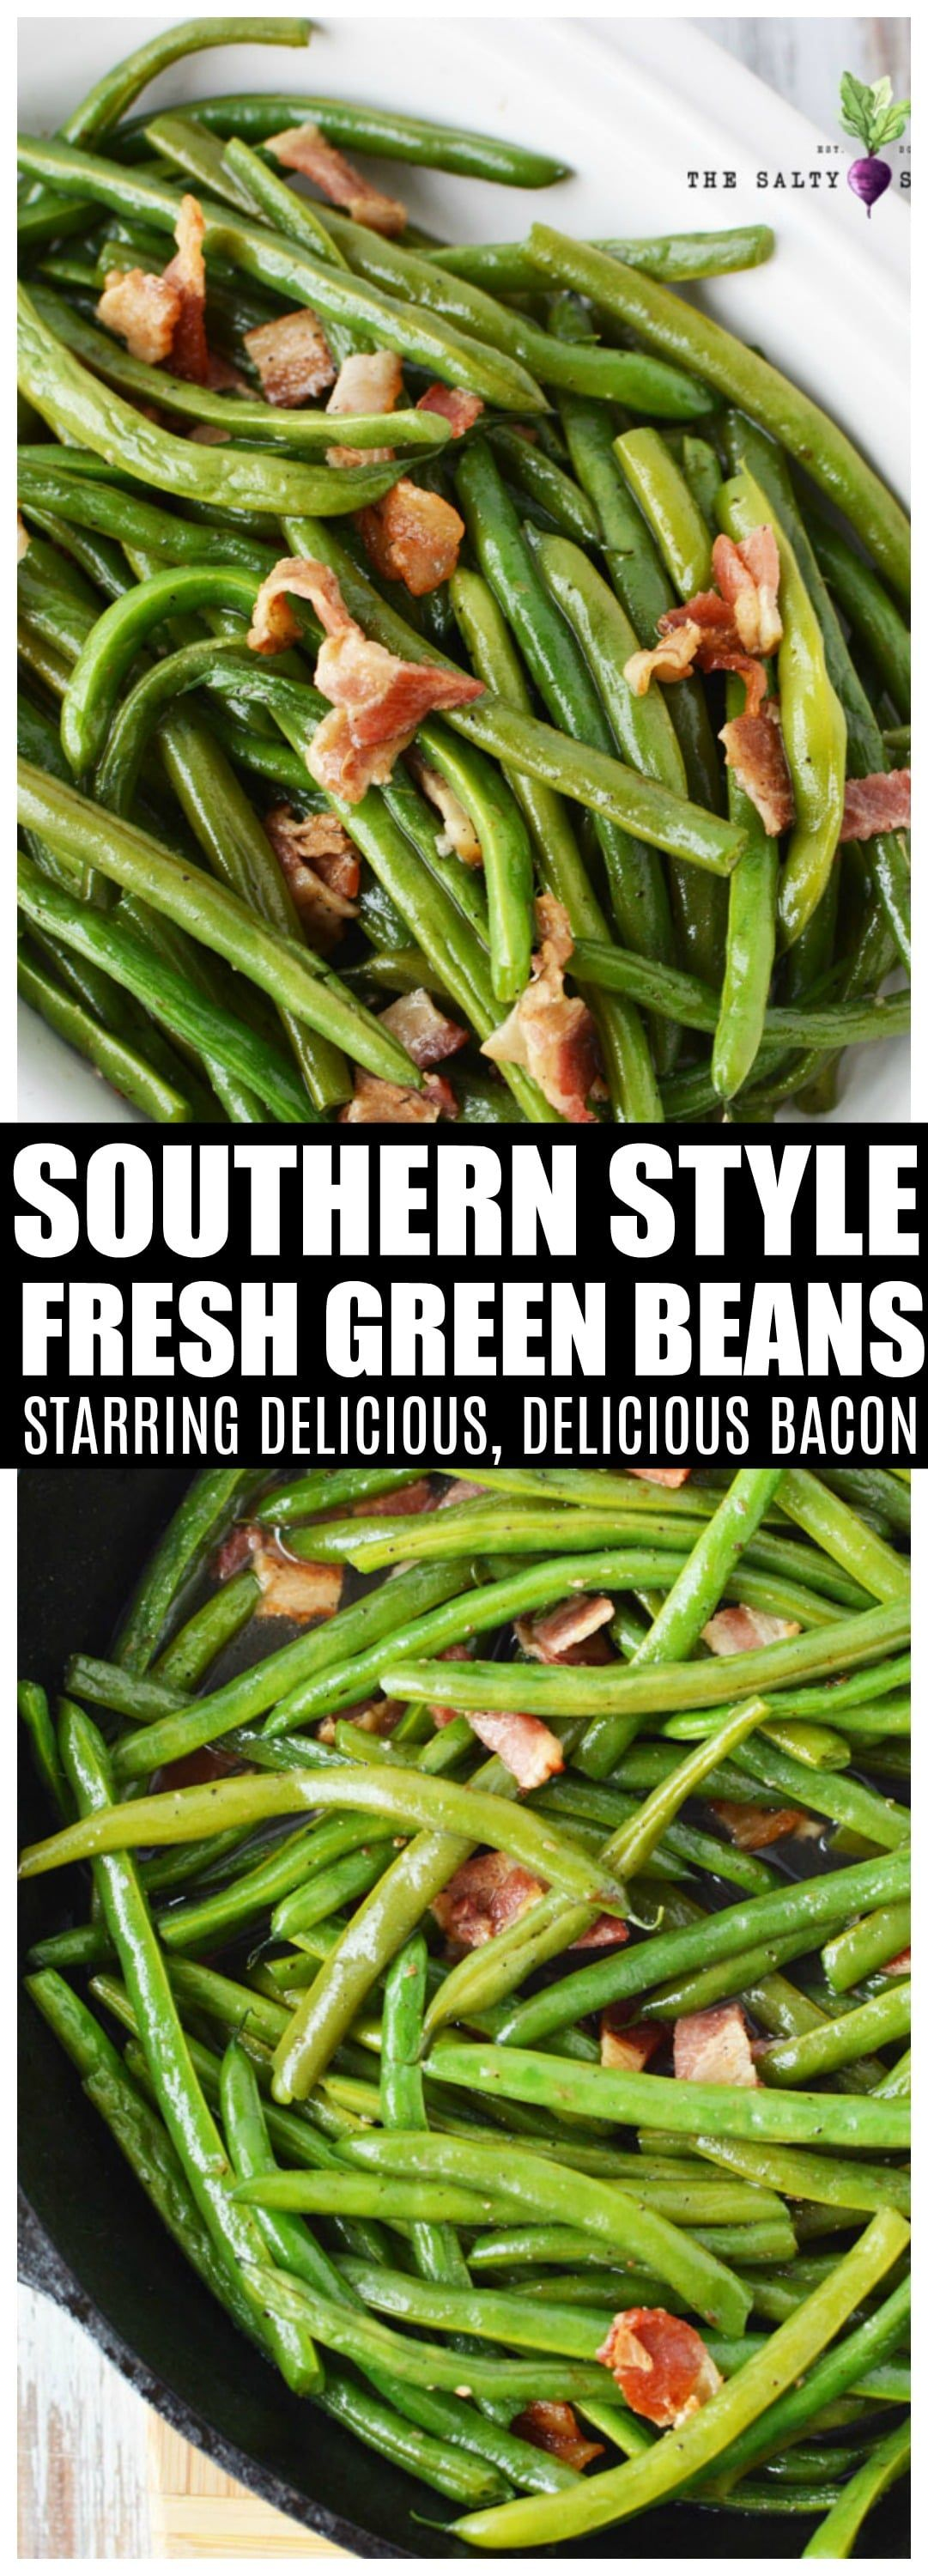 Southern Style Green Beans with fresh green beans and crispy bacon #sidedish #saltysidedish #bacon #greenbeans #holidaysidedish #summersouthernfood